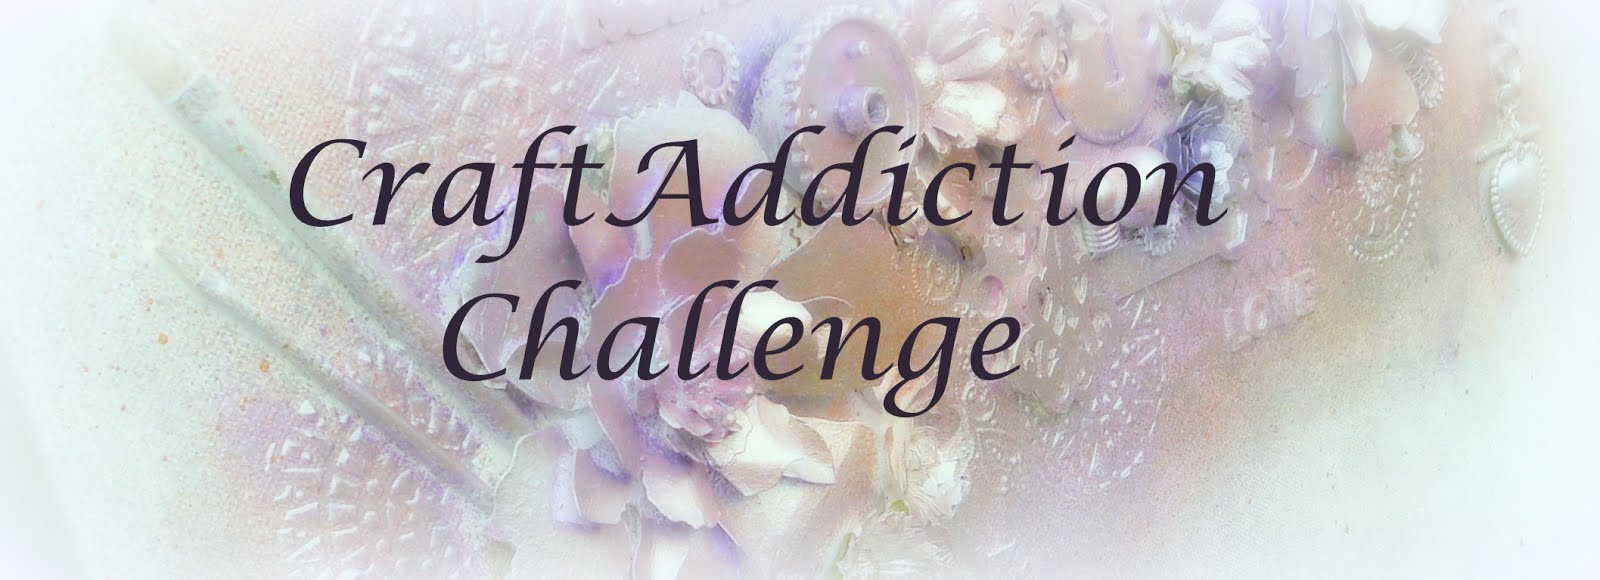 CraftAddiction Challenge